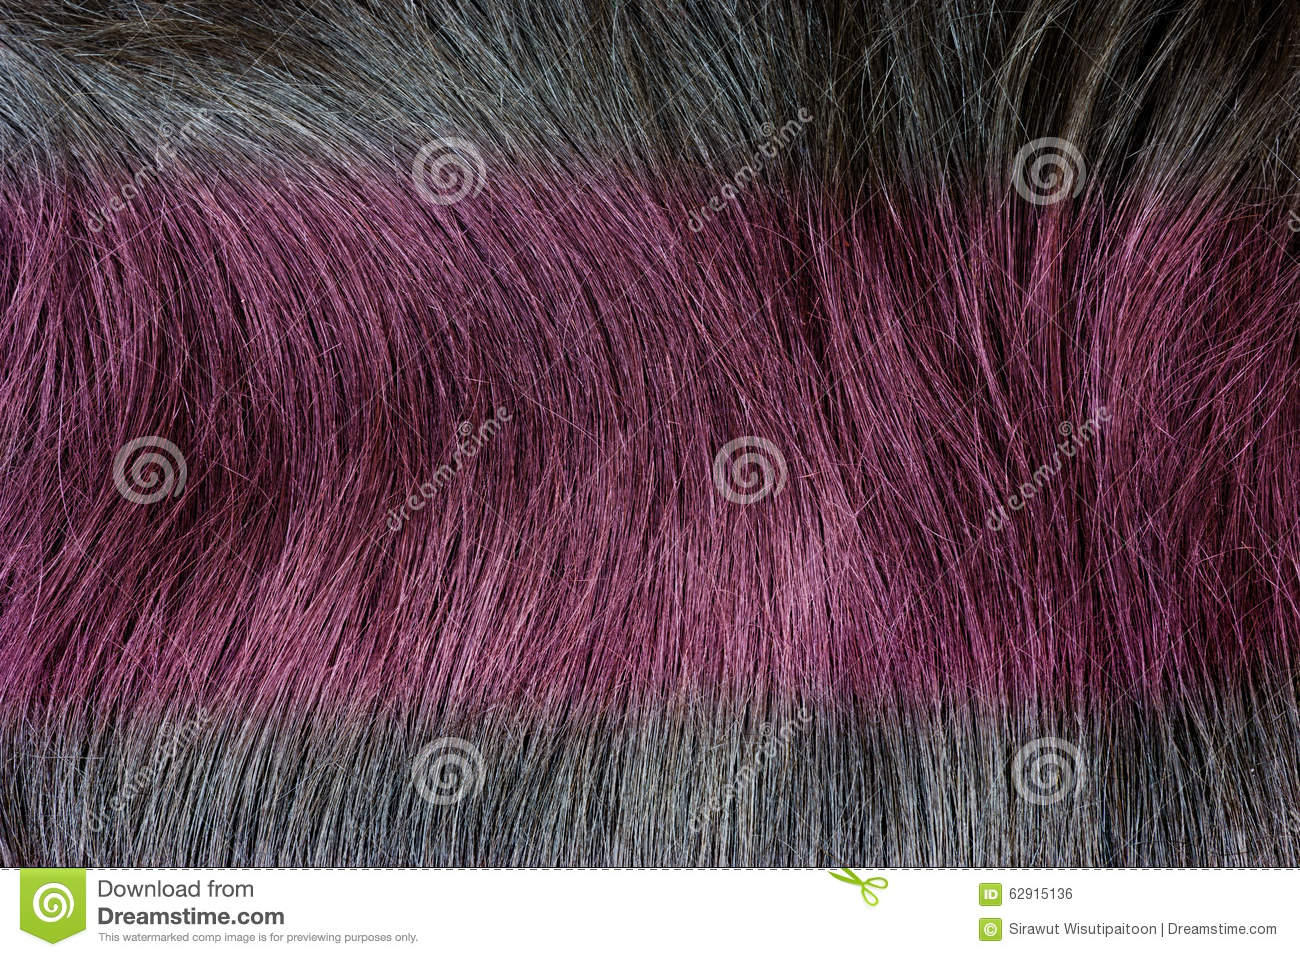 Red color hair texture as background stock photo image - Dreaming about the color red ...